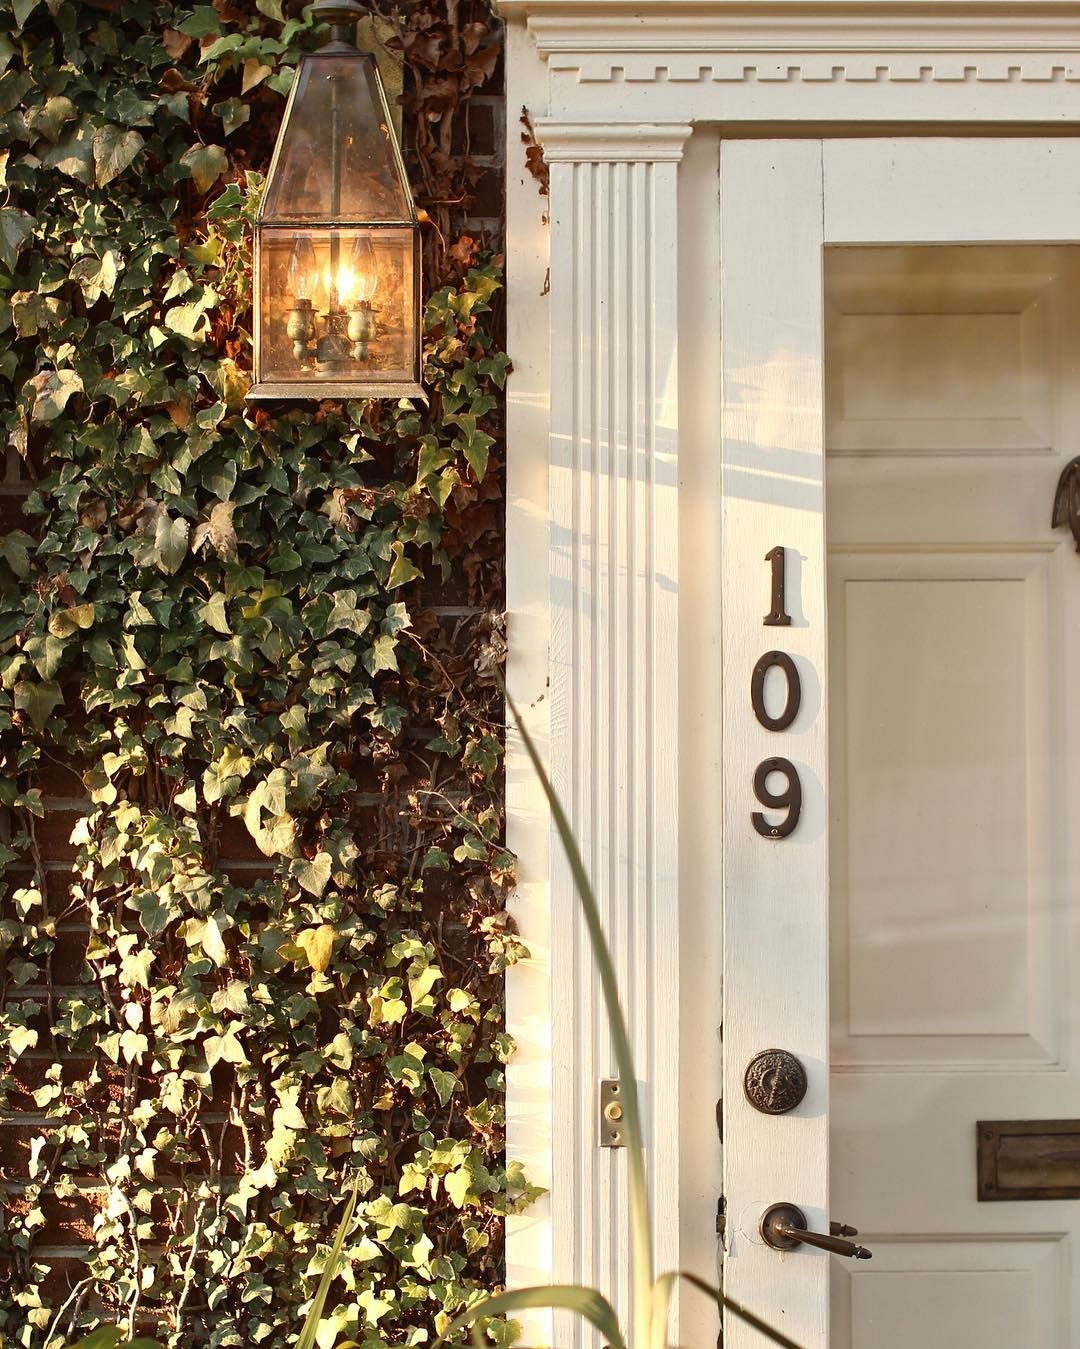 // 109  #hous #architecture #downtown #wilmington #canon #canon_official #door #ivy #englishivy #light